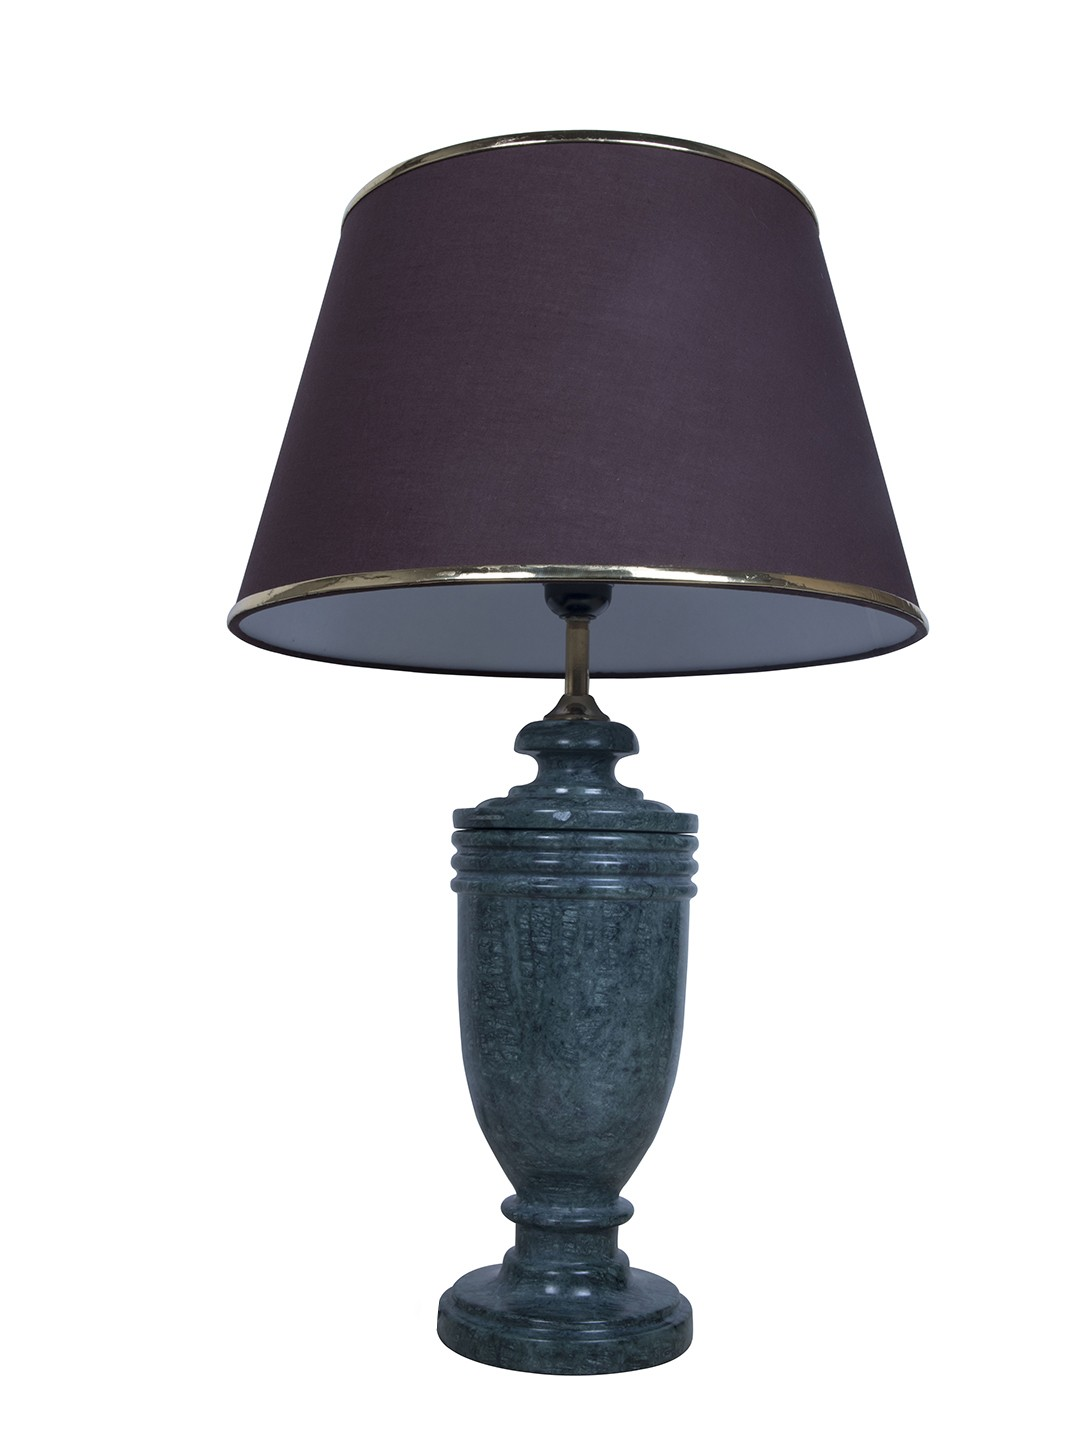 Green Marble Trophy Table Lamp with Gold Brown Shade